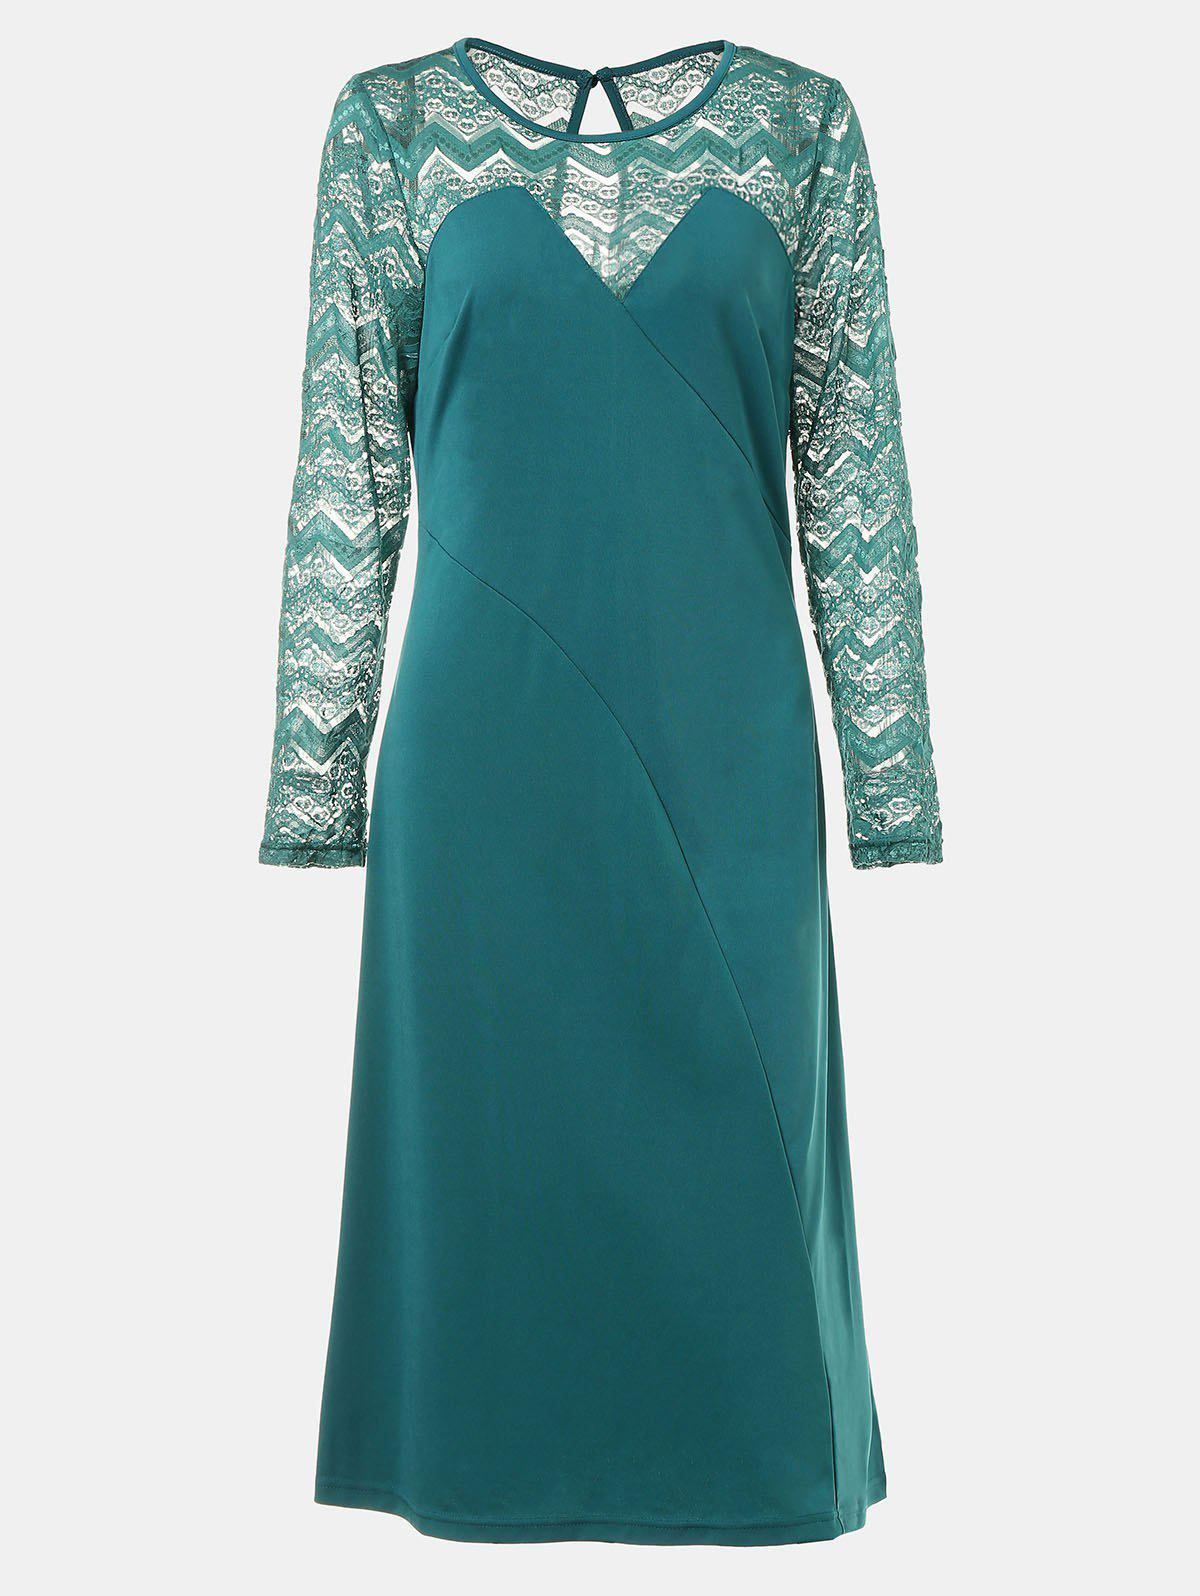 Round Collar Long Sleeve Lace Patchwork A-line Midi Dress - MARINE GREEN M